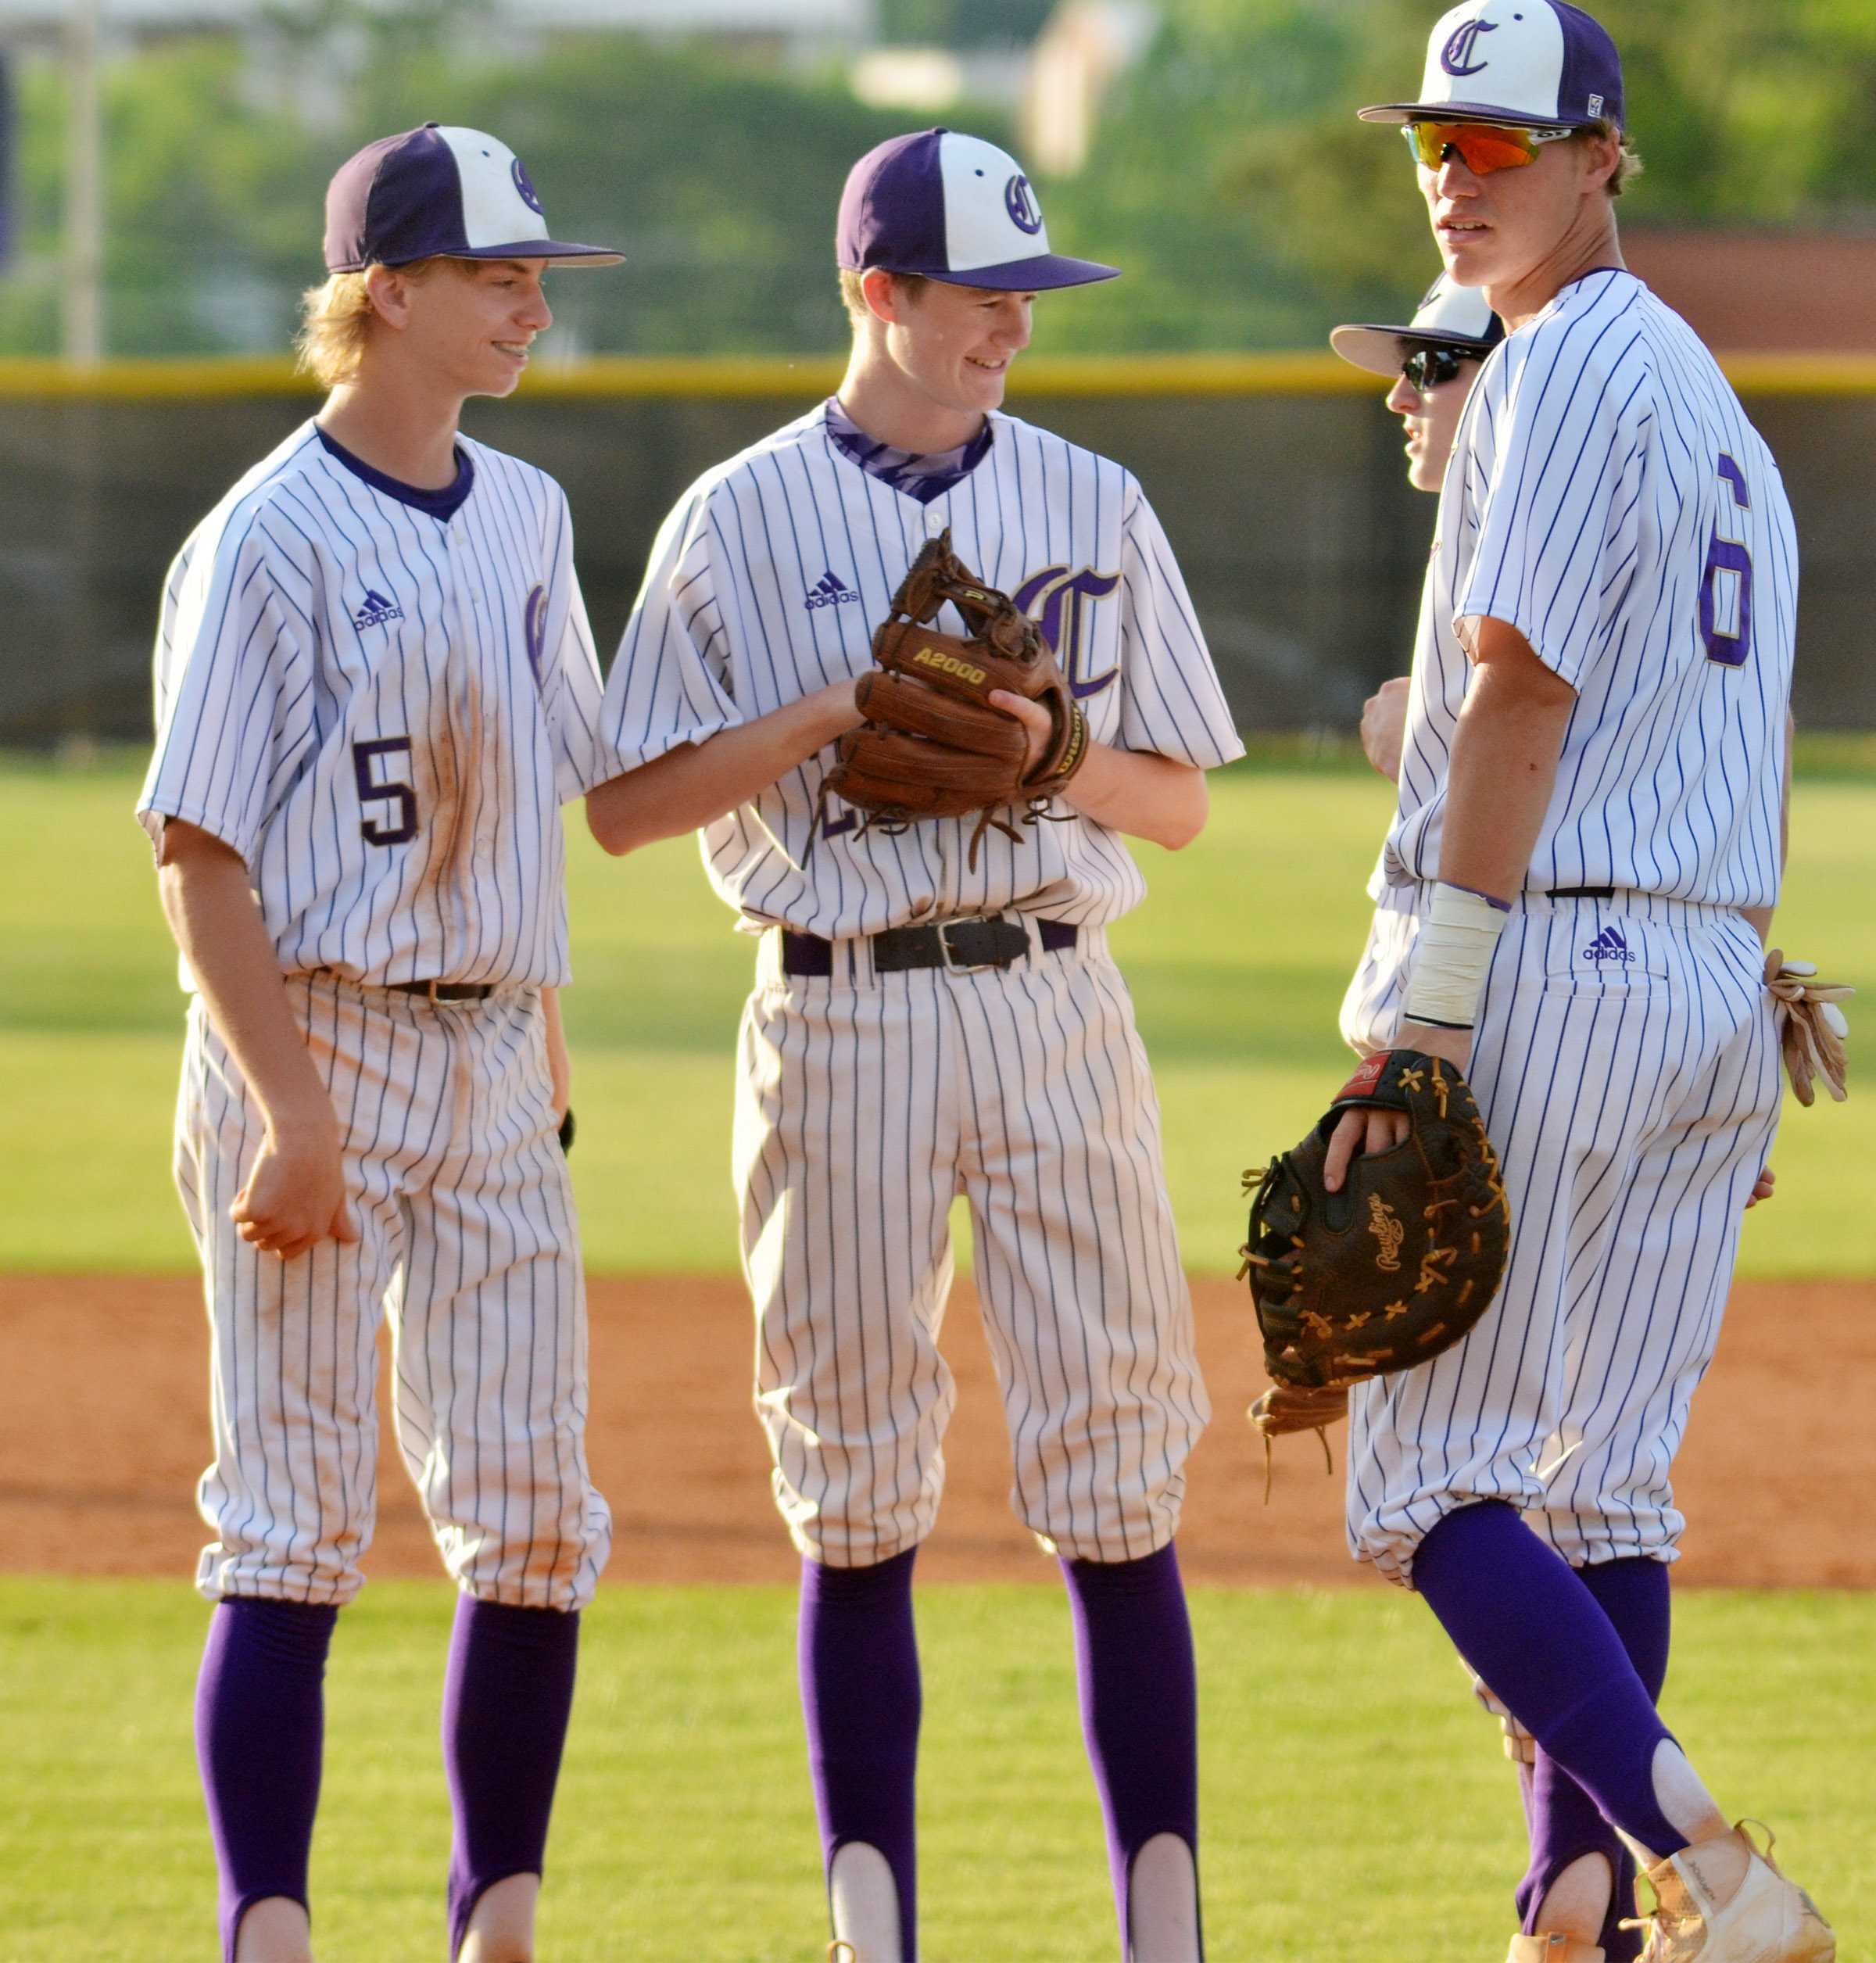 CHS senior Zack Bottoms, at right, talks to, from left, Campbellsville Middle School eighth-graders Arren Hash and Tristin Faulkner and CHS sophomore Jackson Hinton between innings.